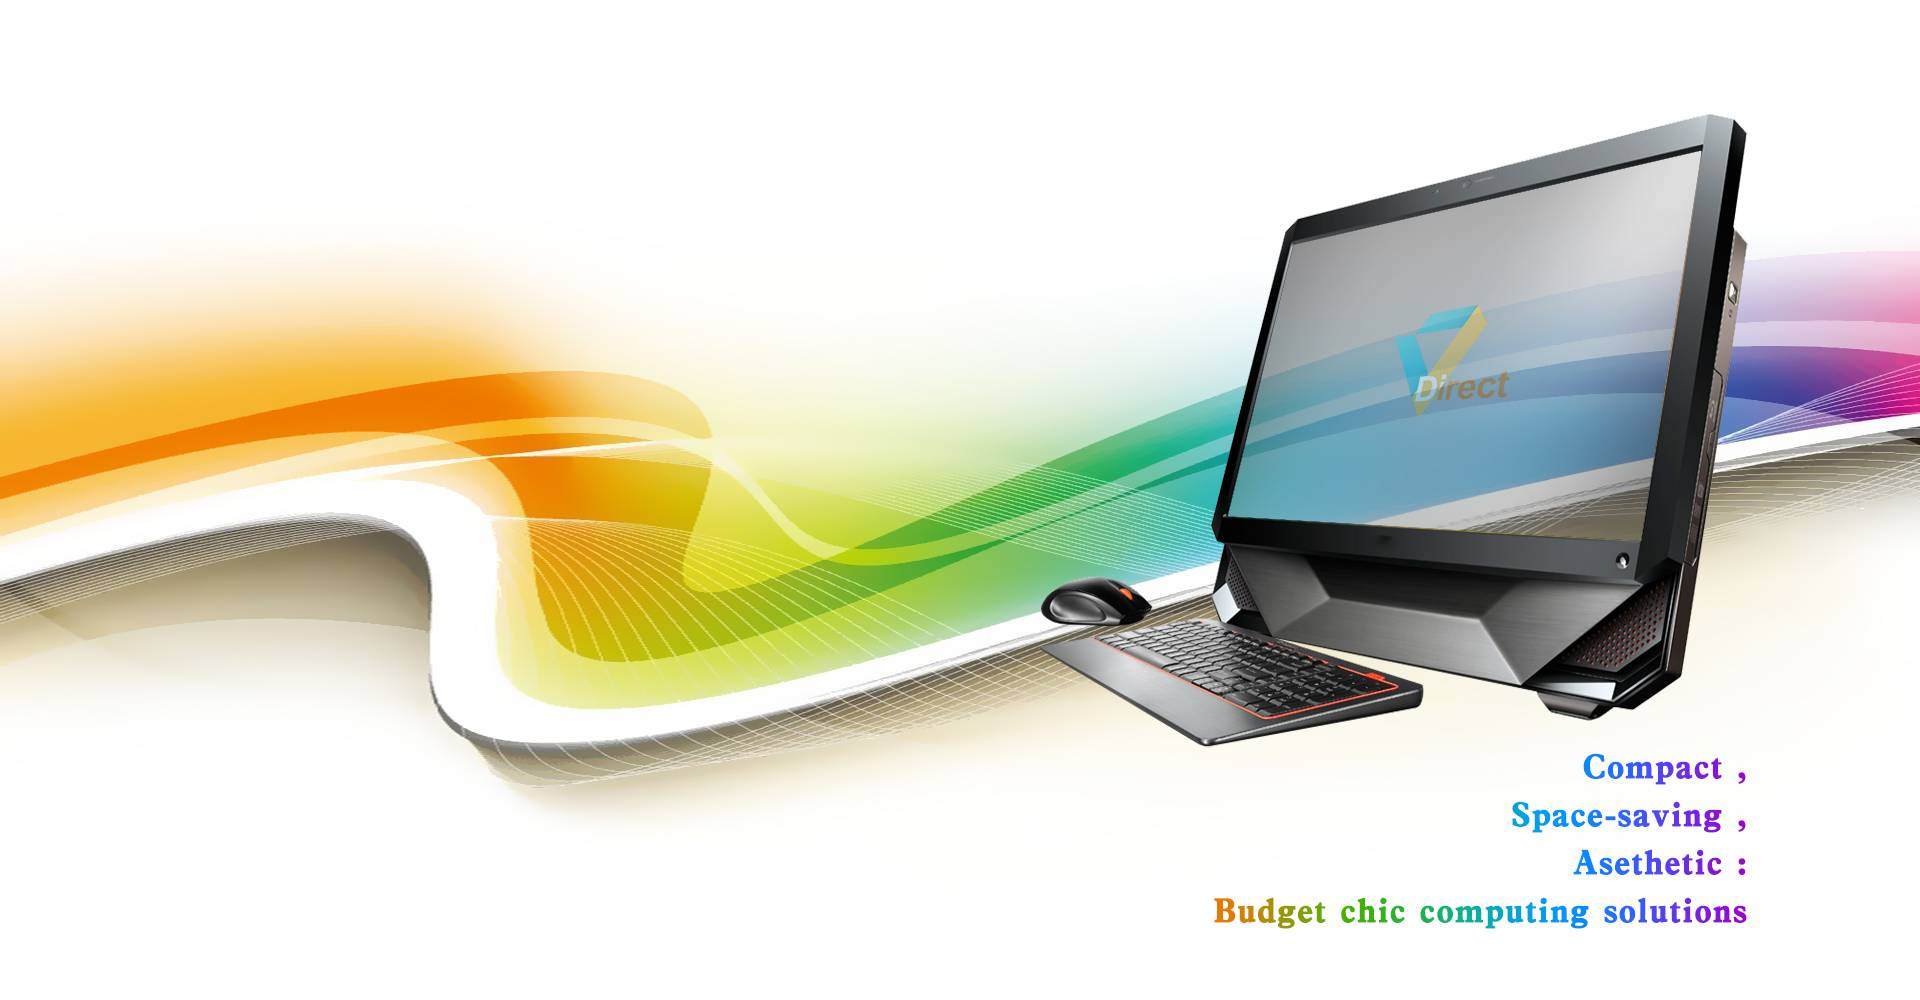 Refurbished AIO All-in-one computers